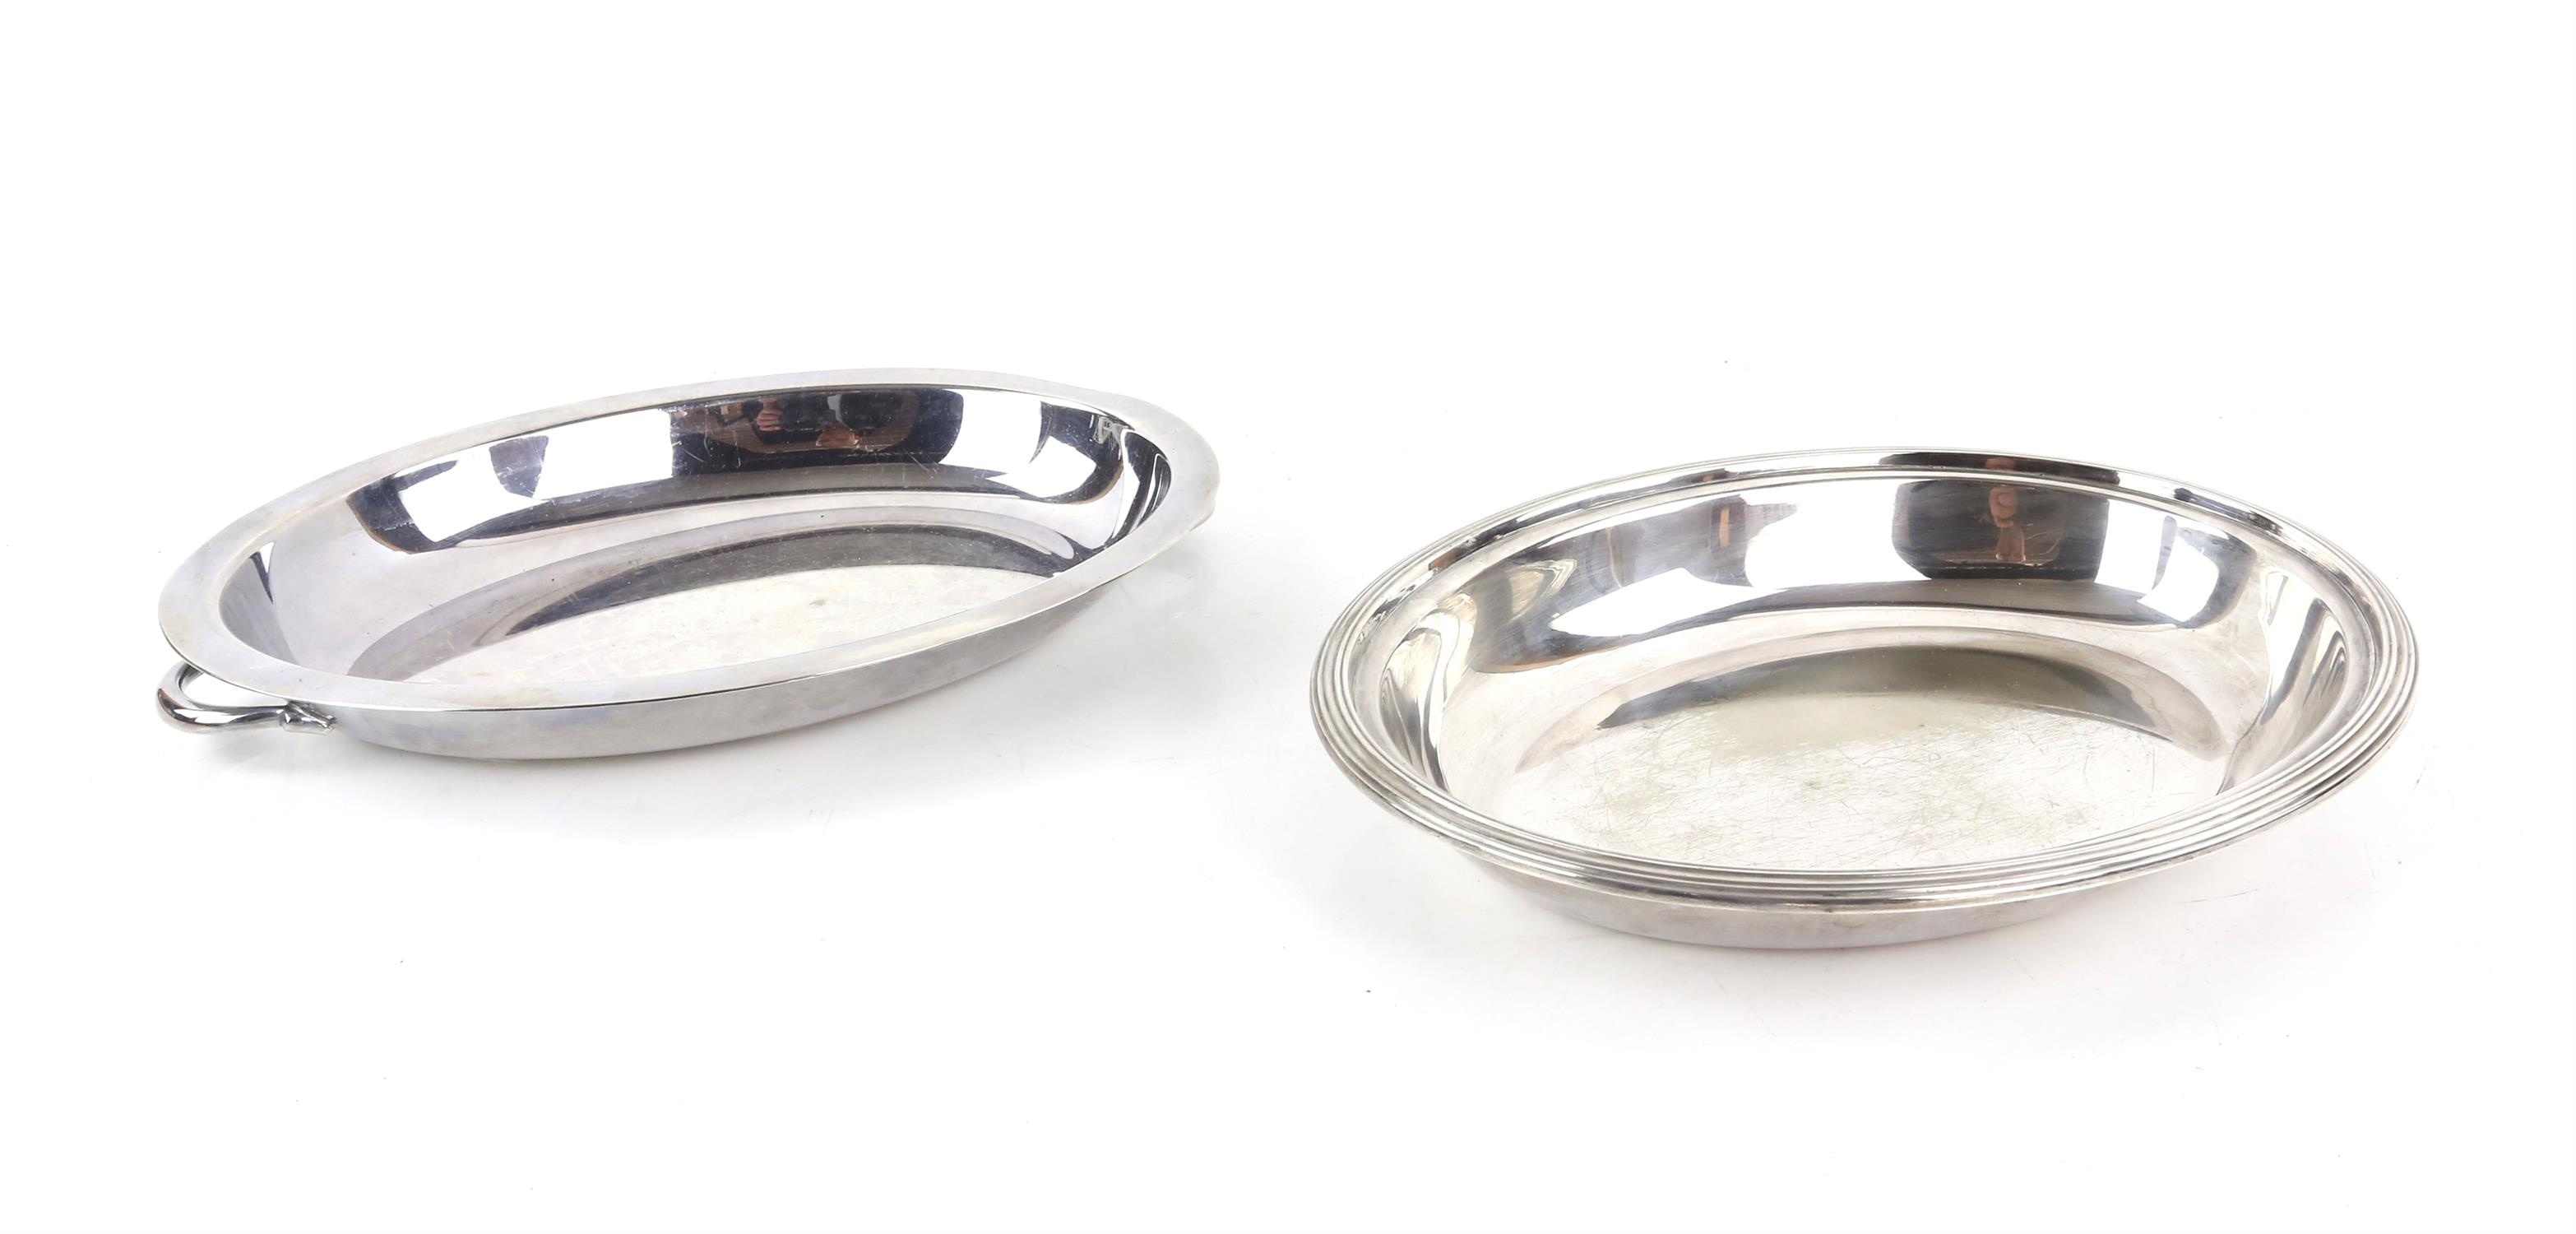 Silver plated twin-handled tray with beaded border, 77cm wide, pair of bottle holders, - Image 5 of 5